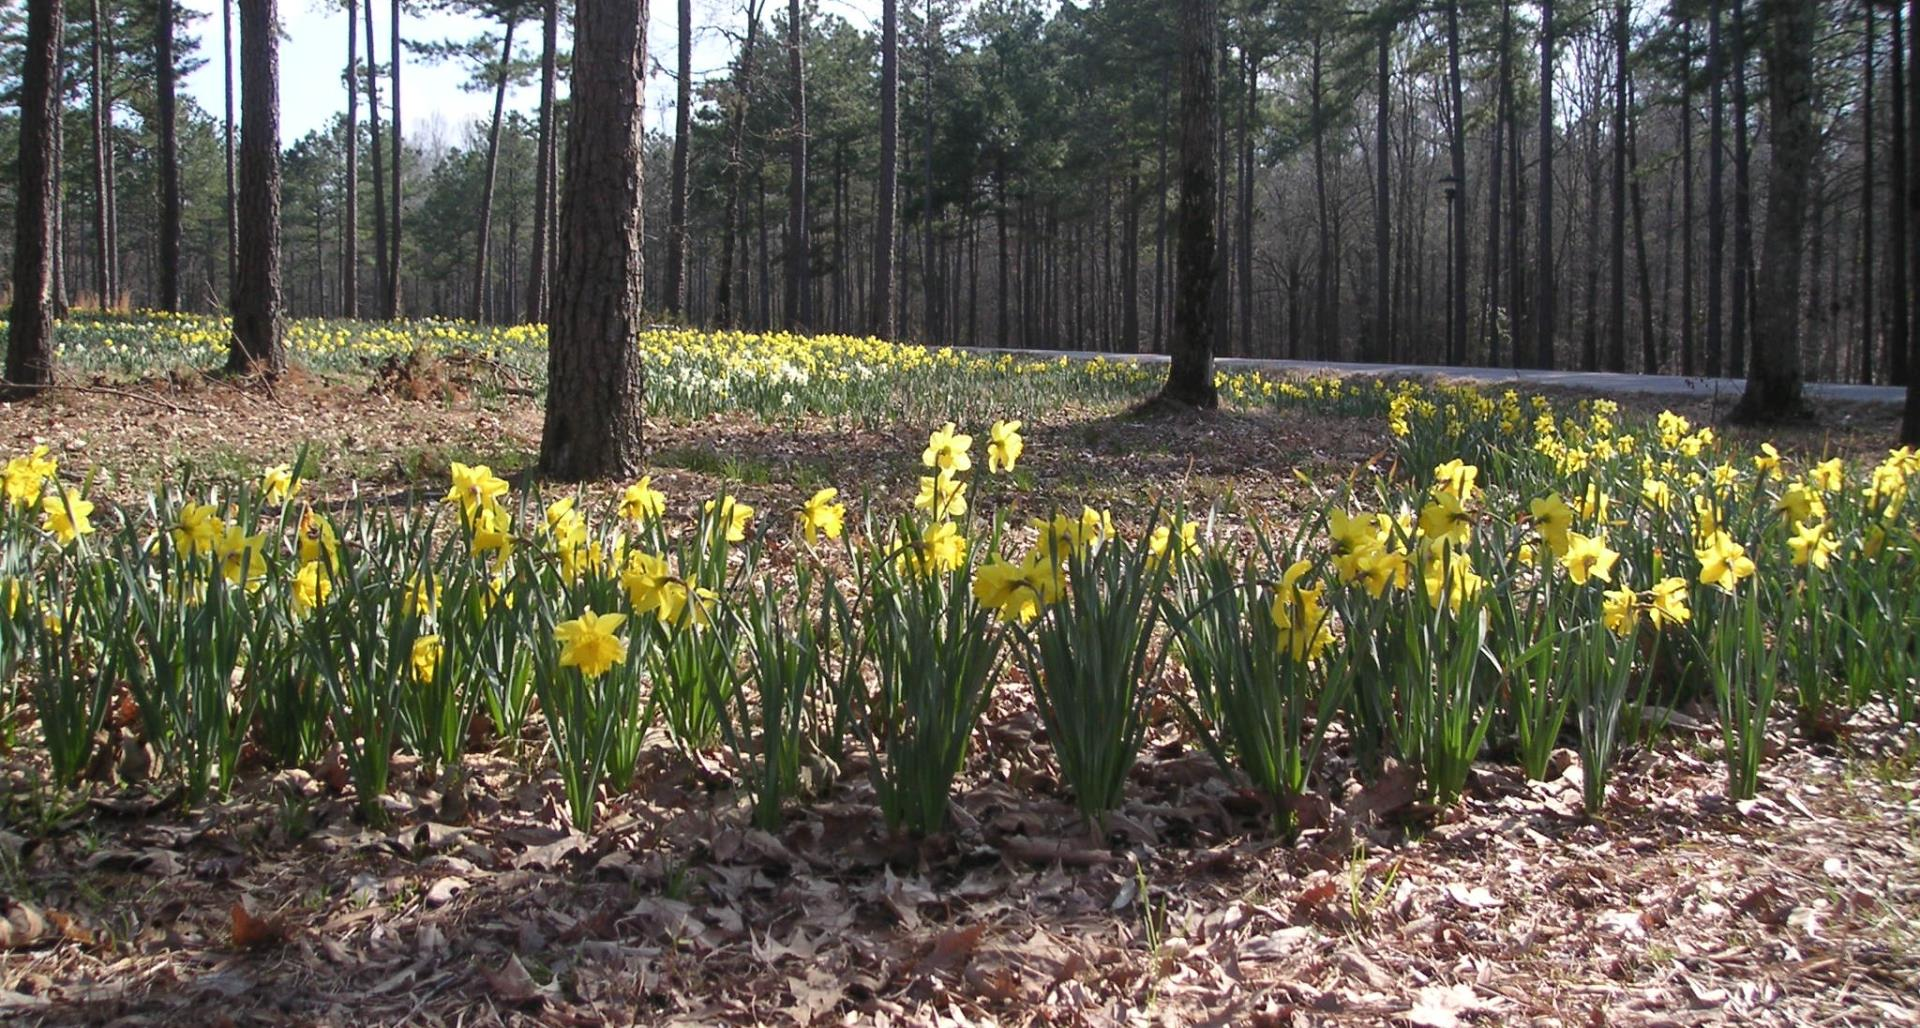 #TeachingTuesday: Daffodils